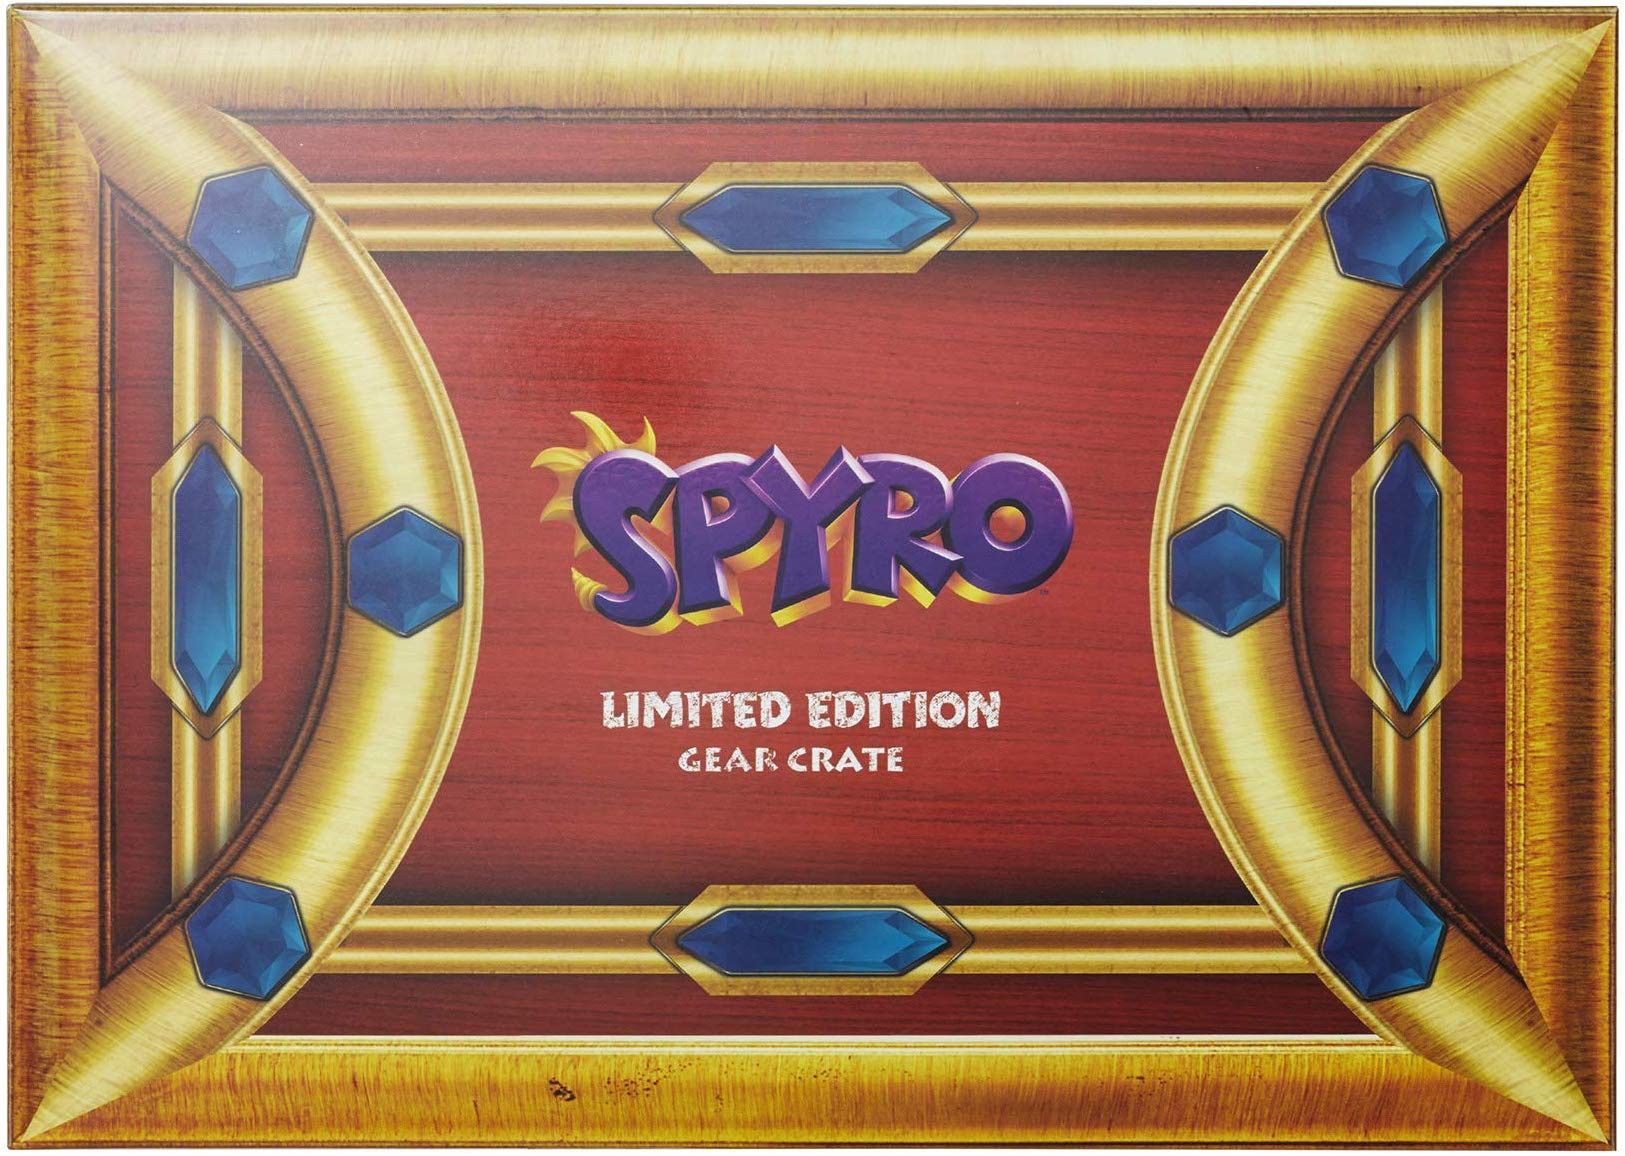 Spyro Limited Edition Gear Crate